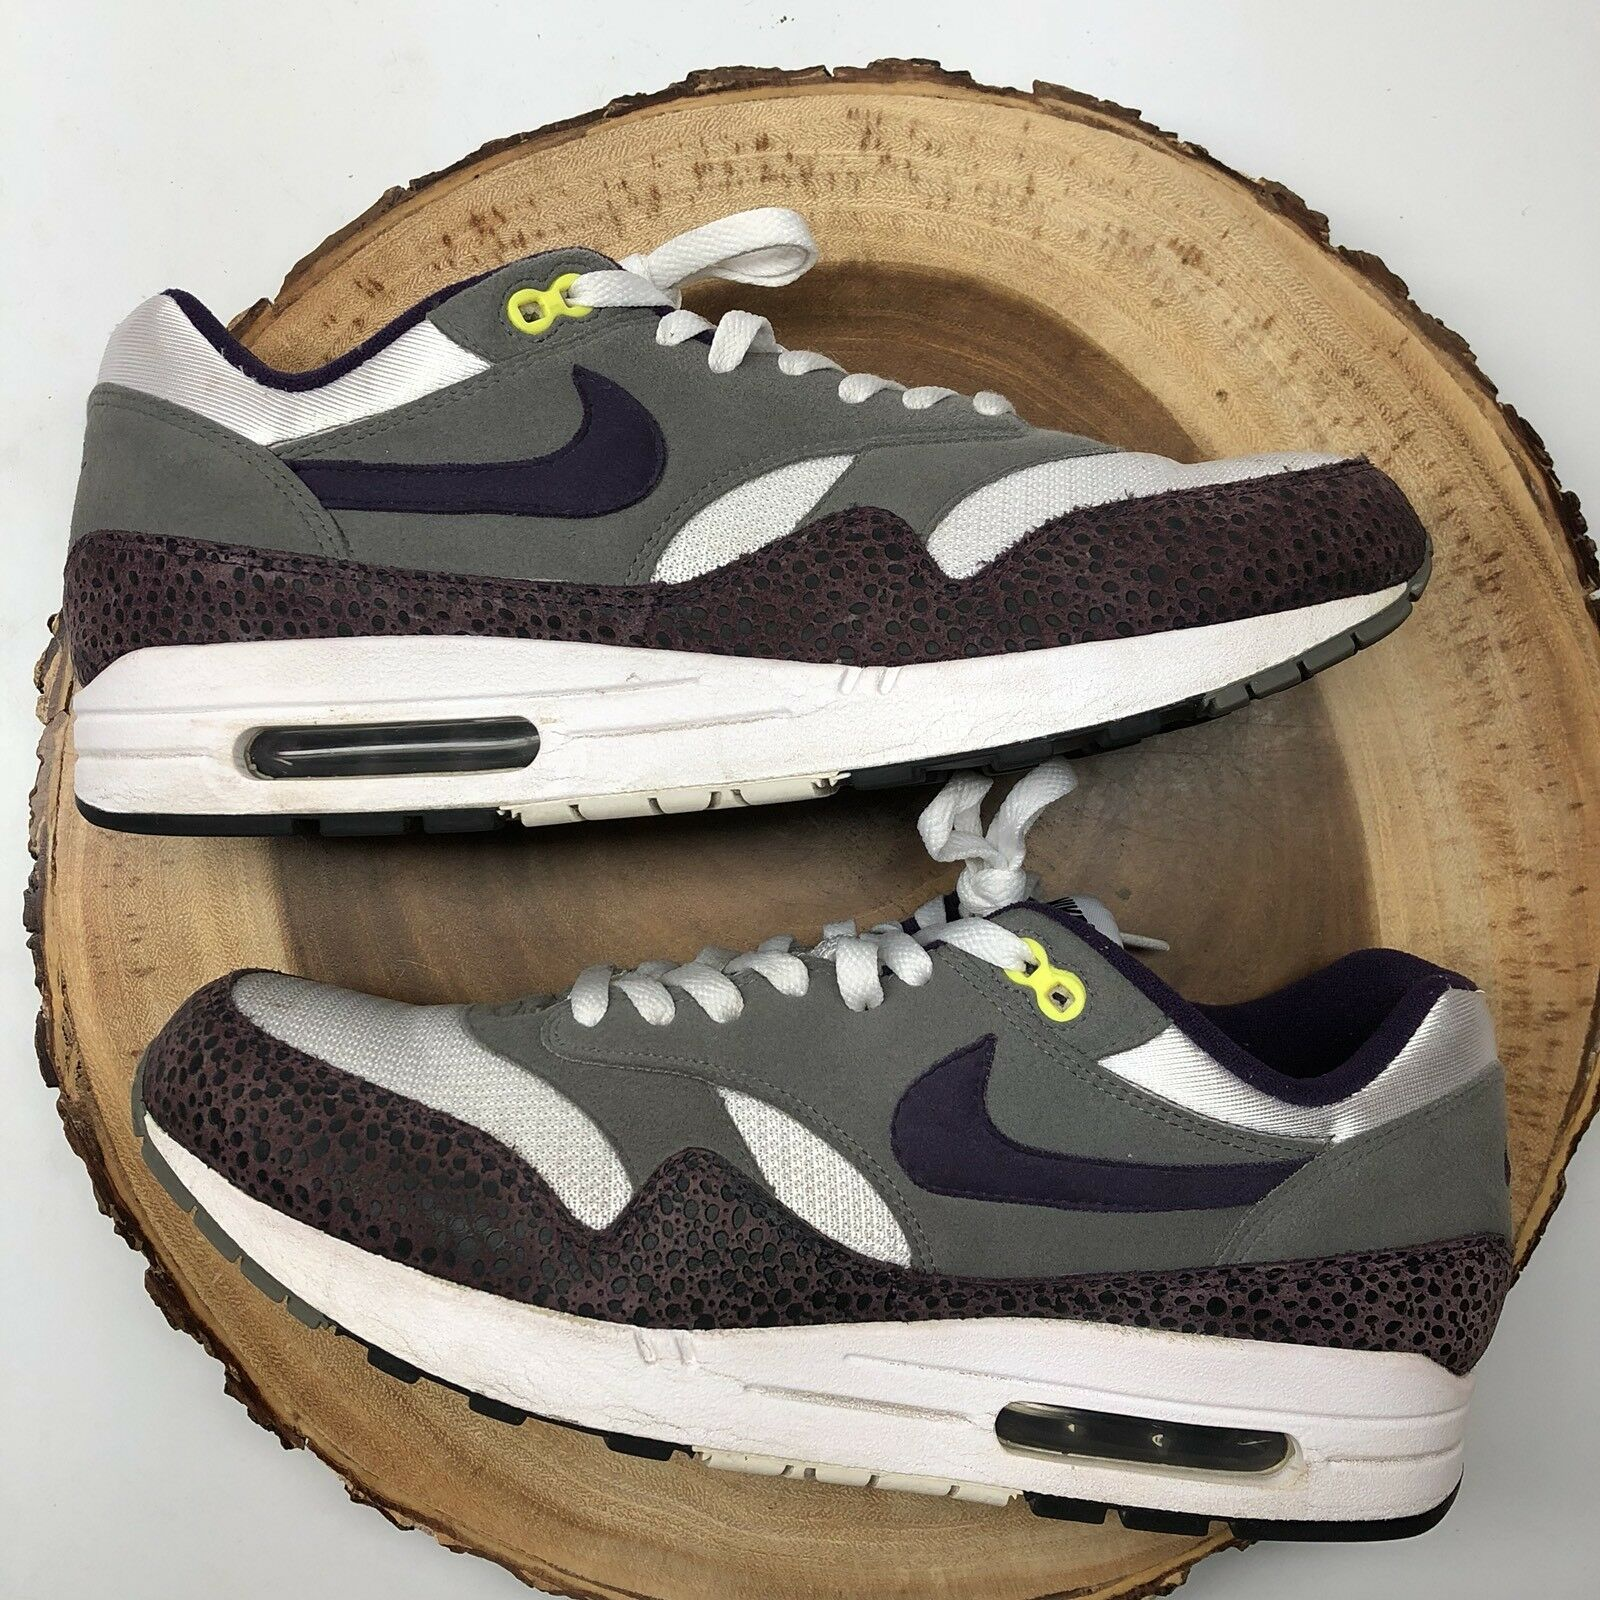 NIKE AIR MAX 1 SAFARI GRAND PURPLE Sz 12 ATMOS PATTA 180 90 SUPREME Parra Kith